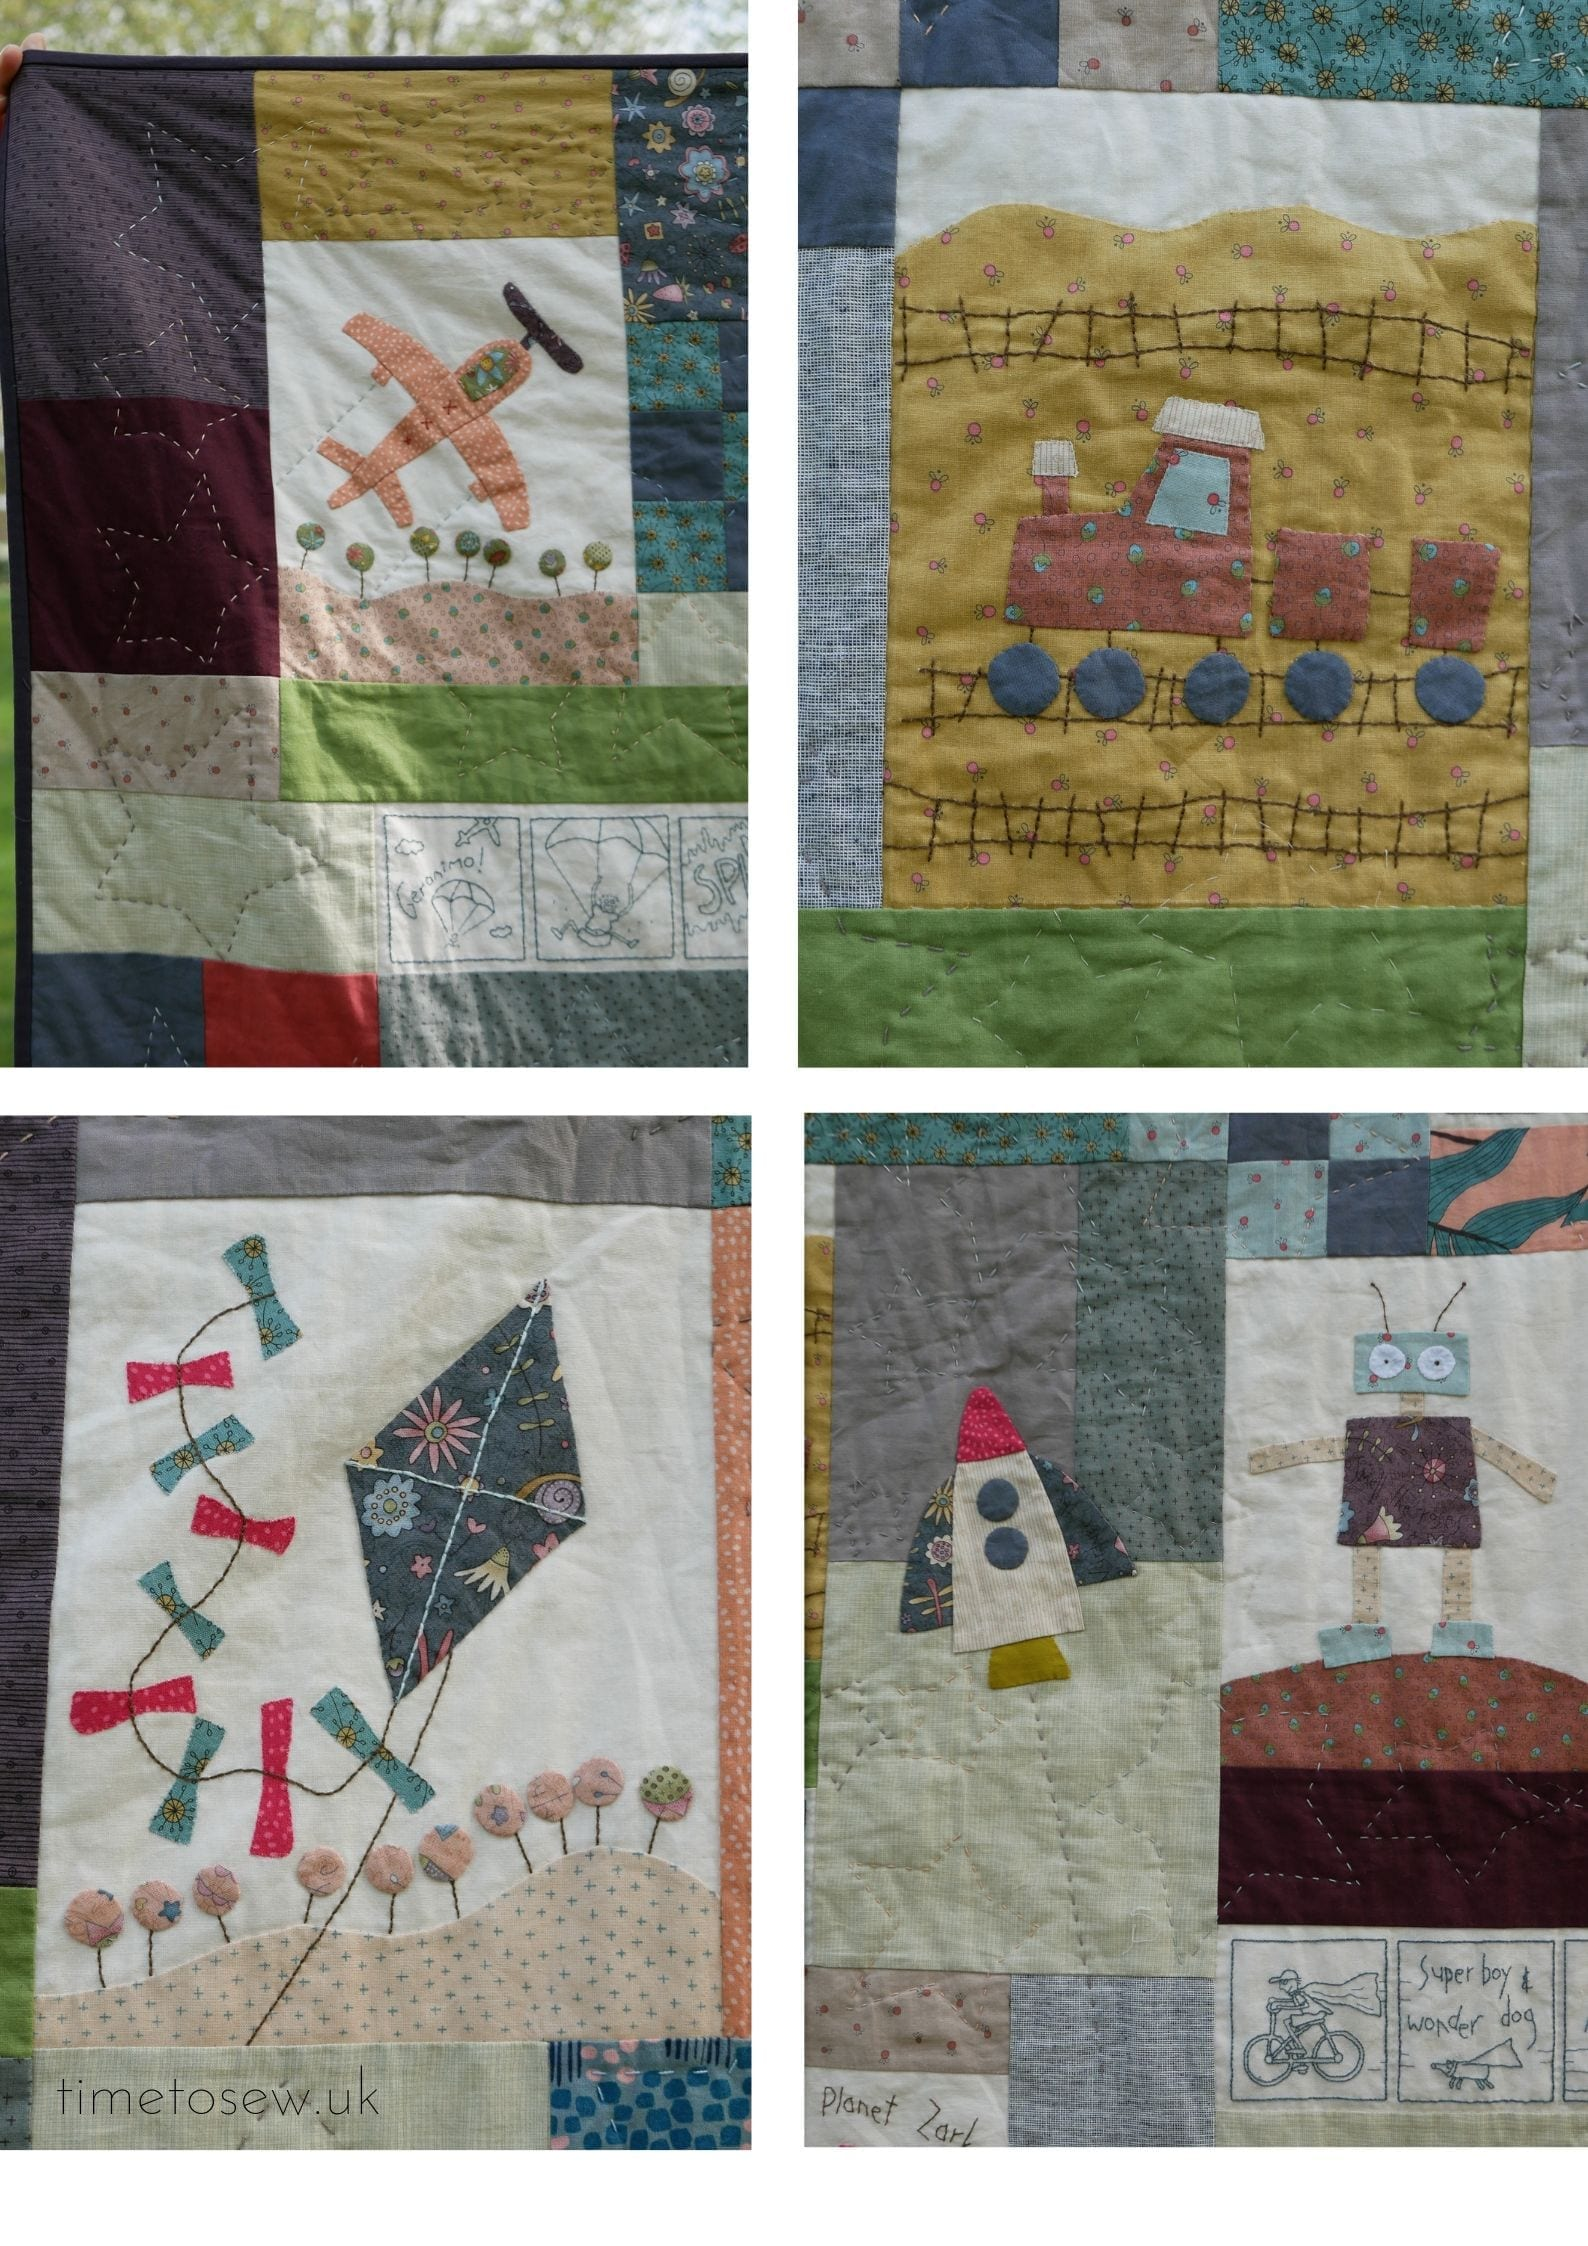 A boy's story quilt panel details